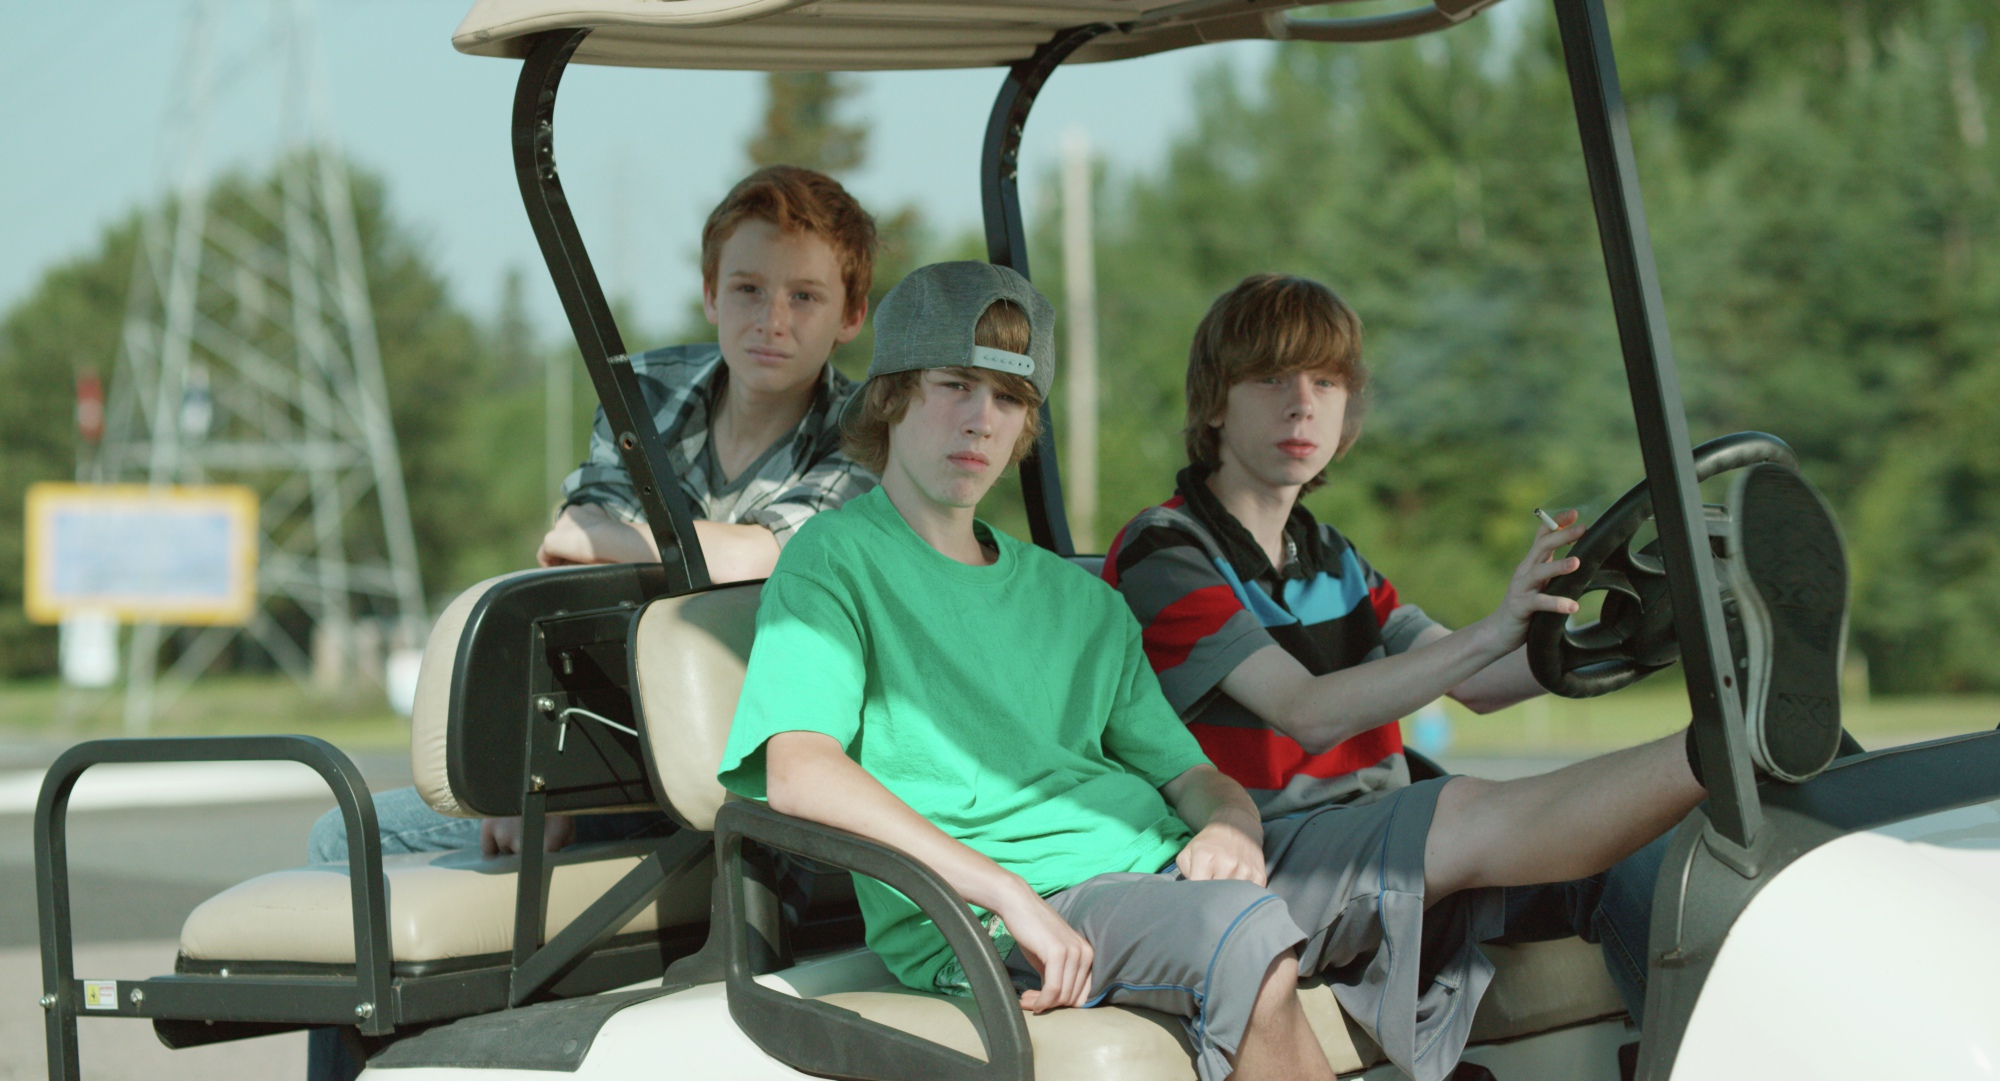 Jackson Martin, Reece Moffett, and Nick Serino in Sleeping Giant (2015)